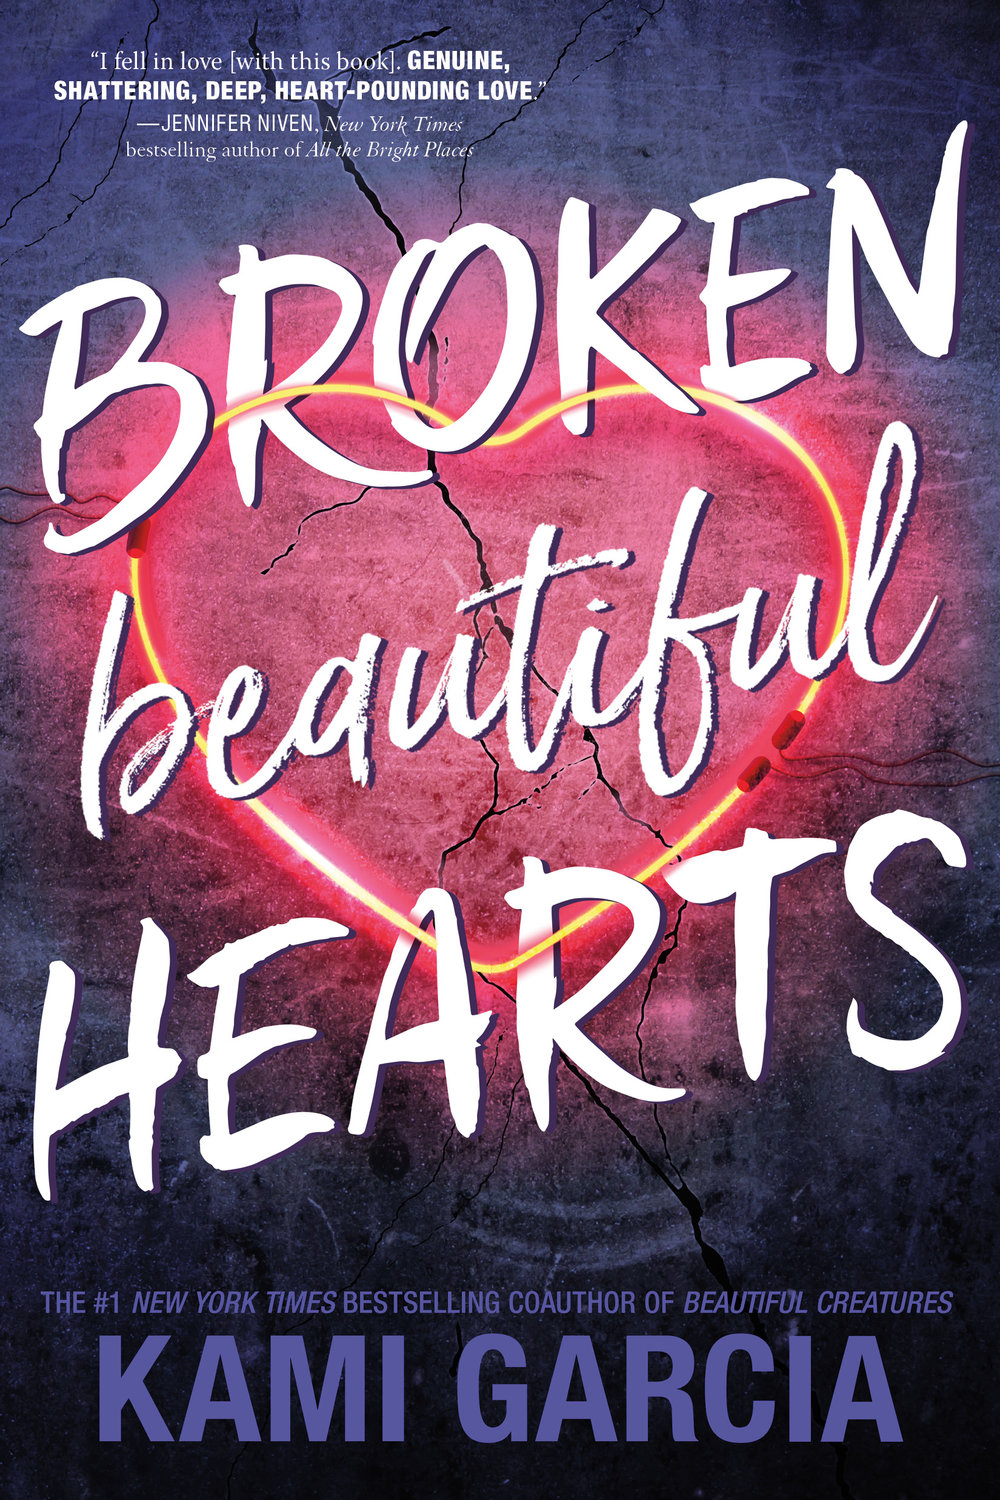 BROKEN BEAUTIFUL HEARTS_Hires.jpg